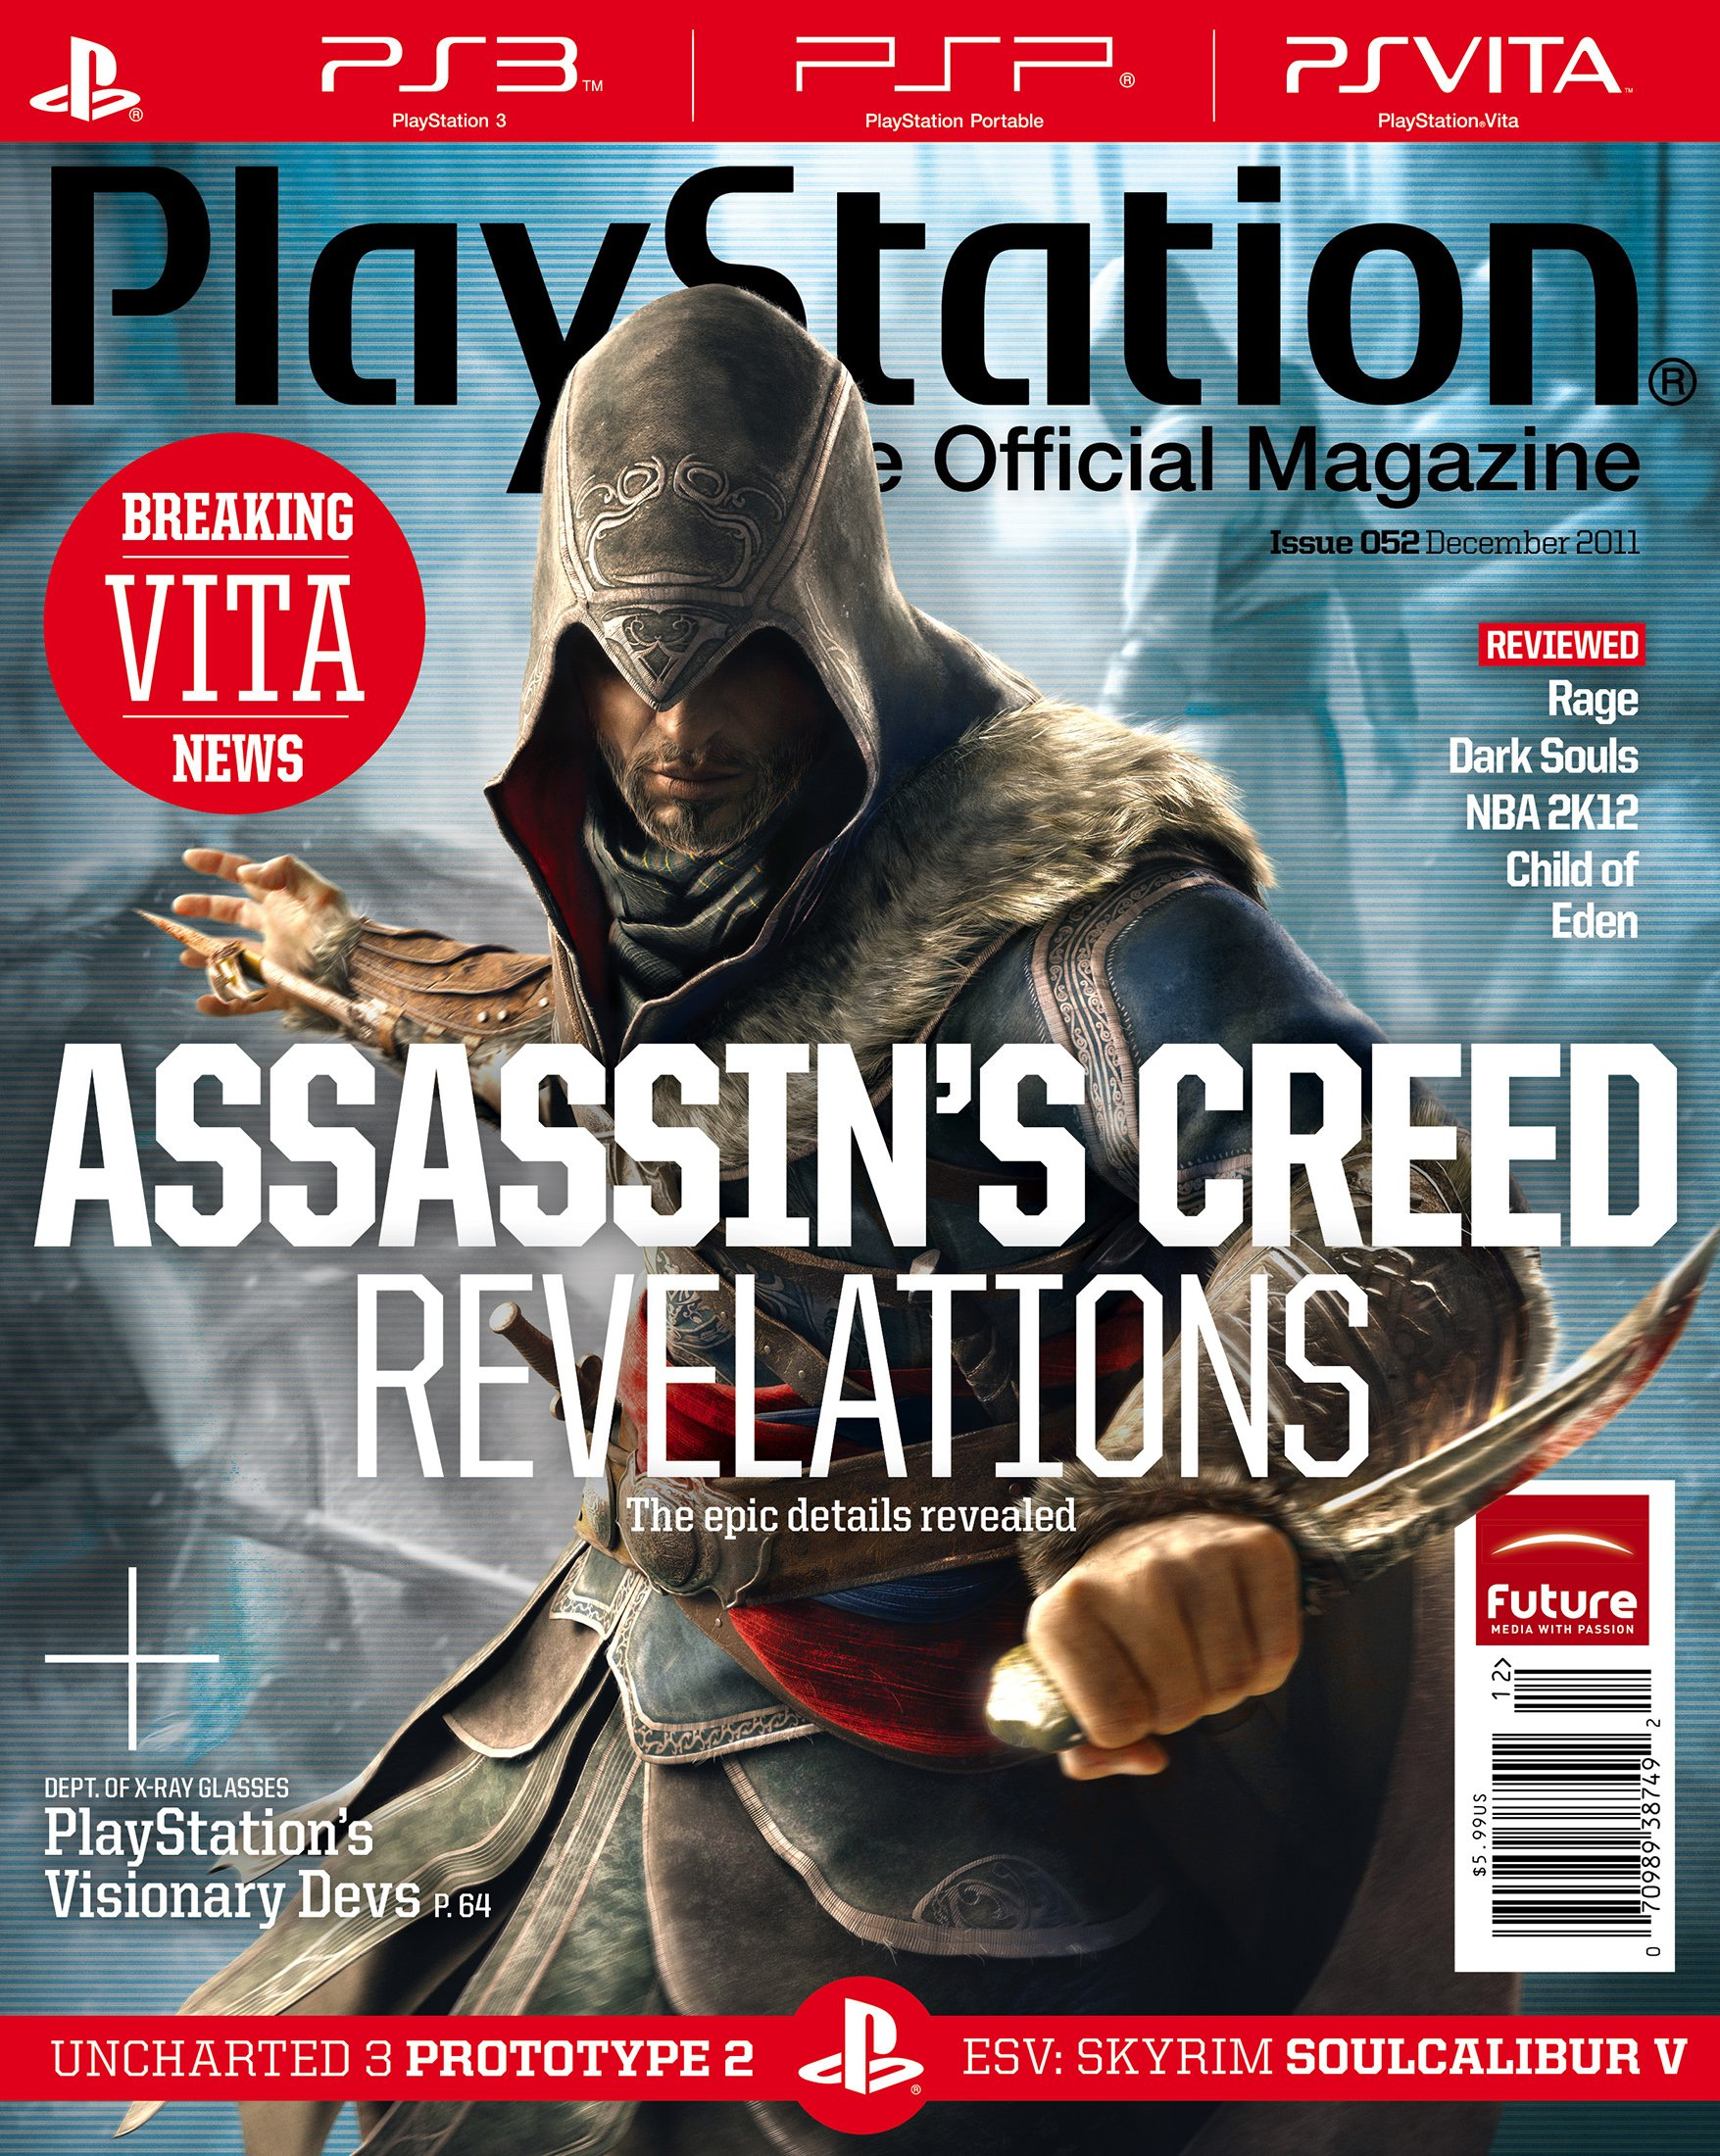 Playstation The Official Magazine (USA) Issue 052 (December 2011)